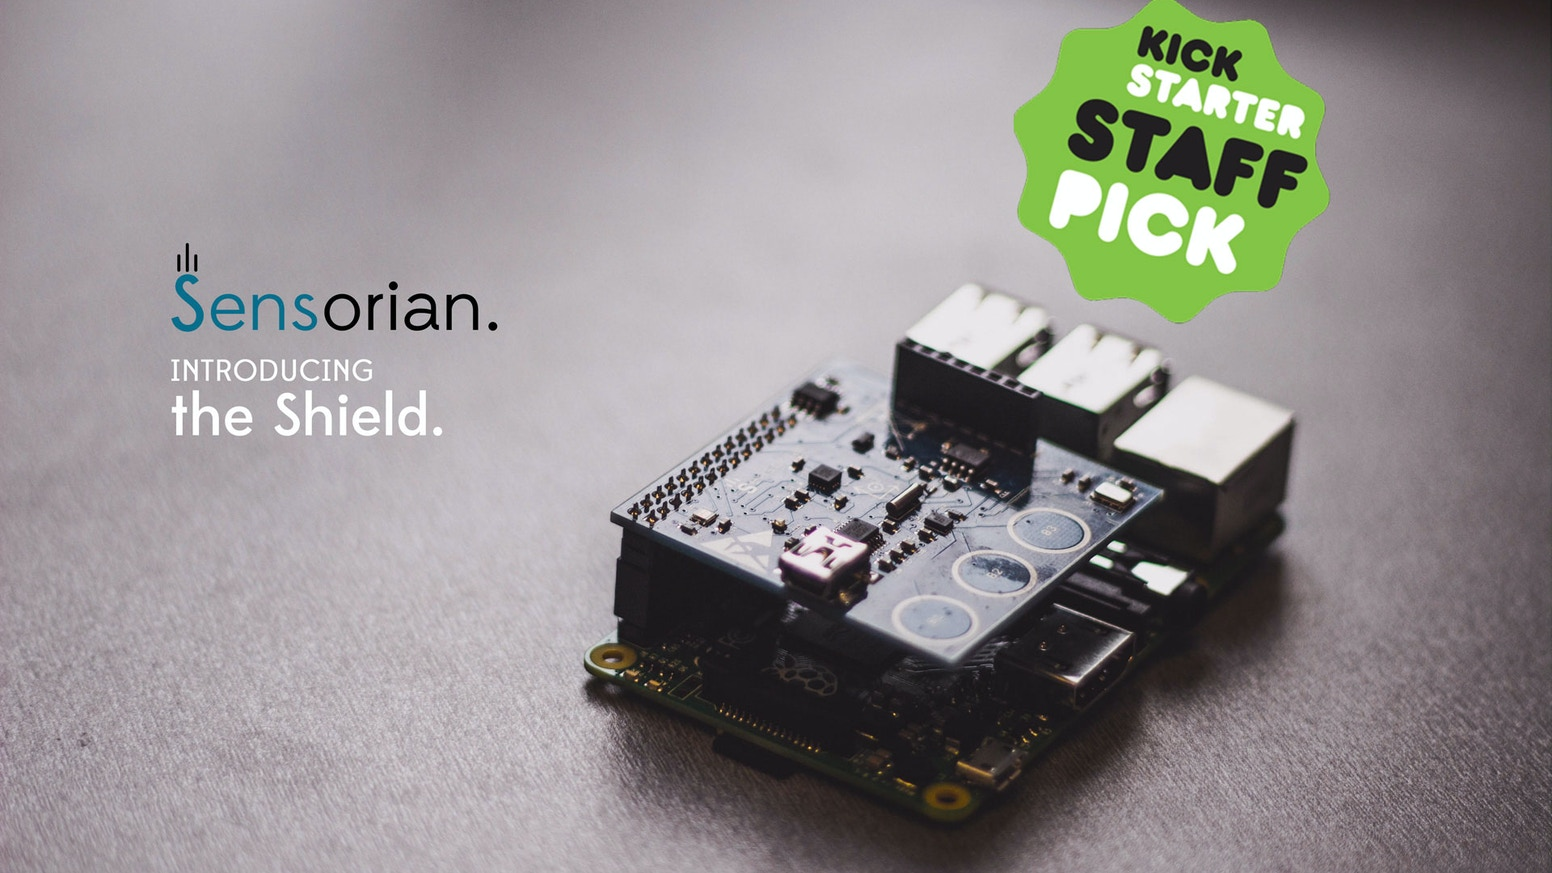 Supercharge your Raspberry Pi with our sensor-packed shield. Harness the physical world in your projects and applications!